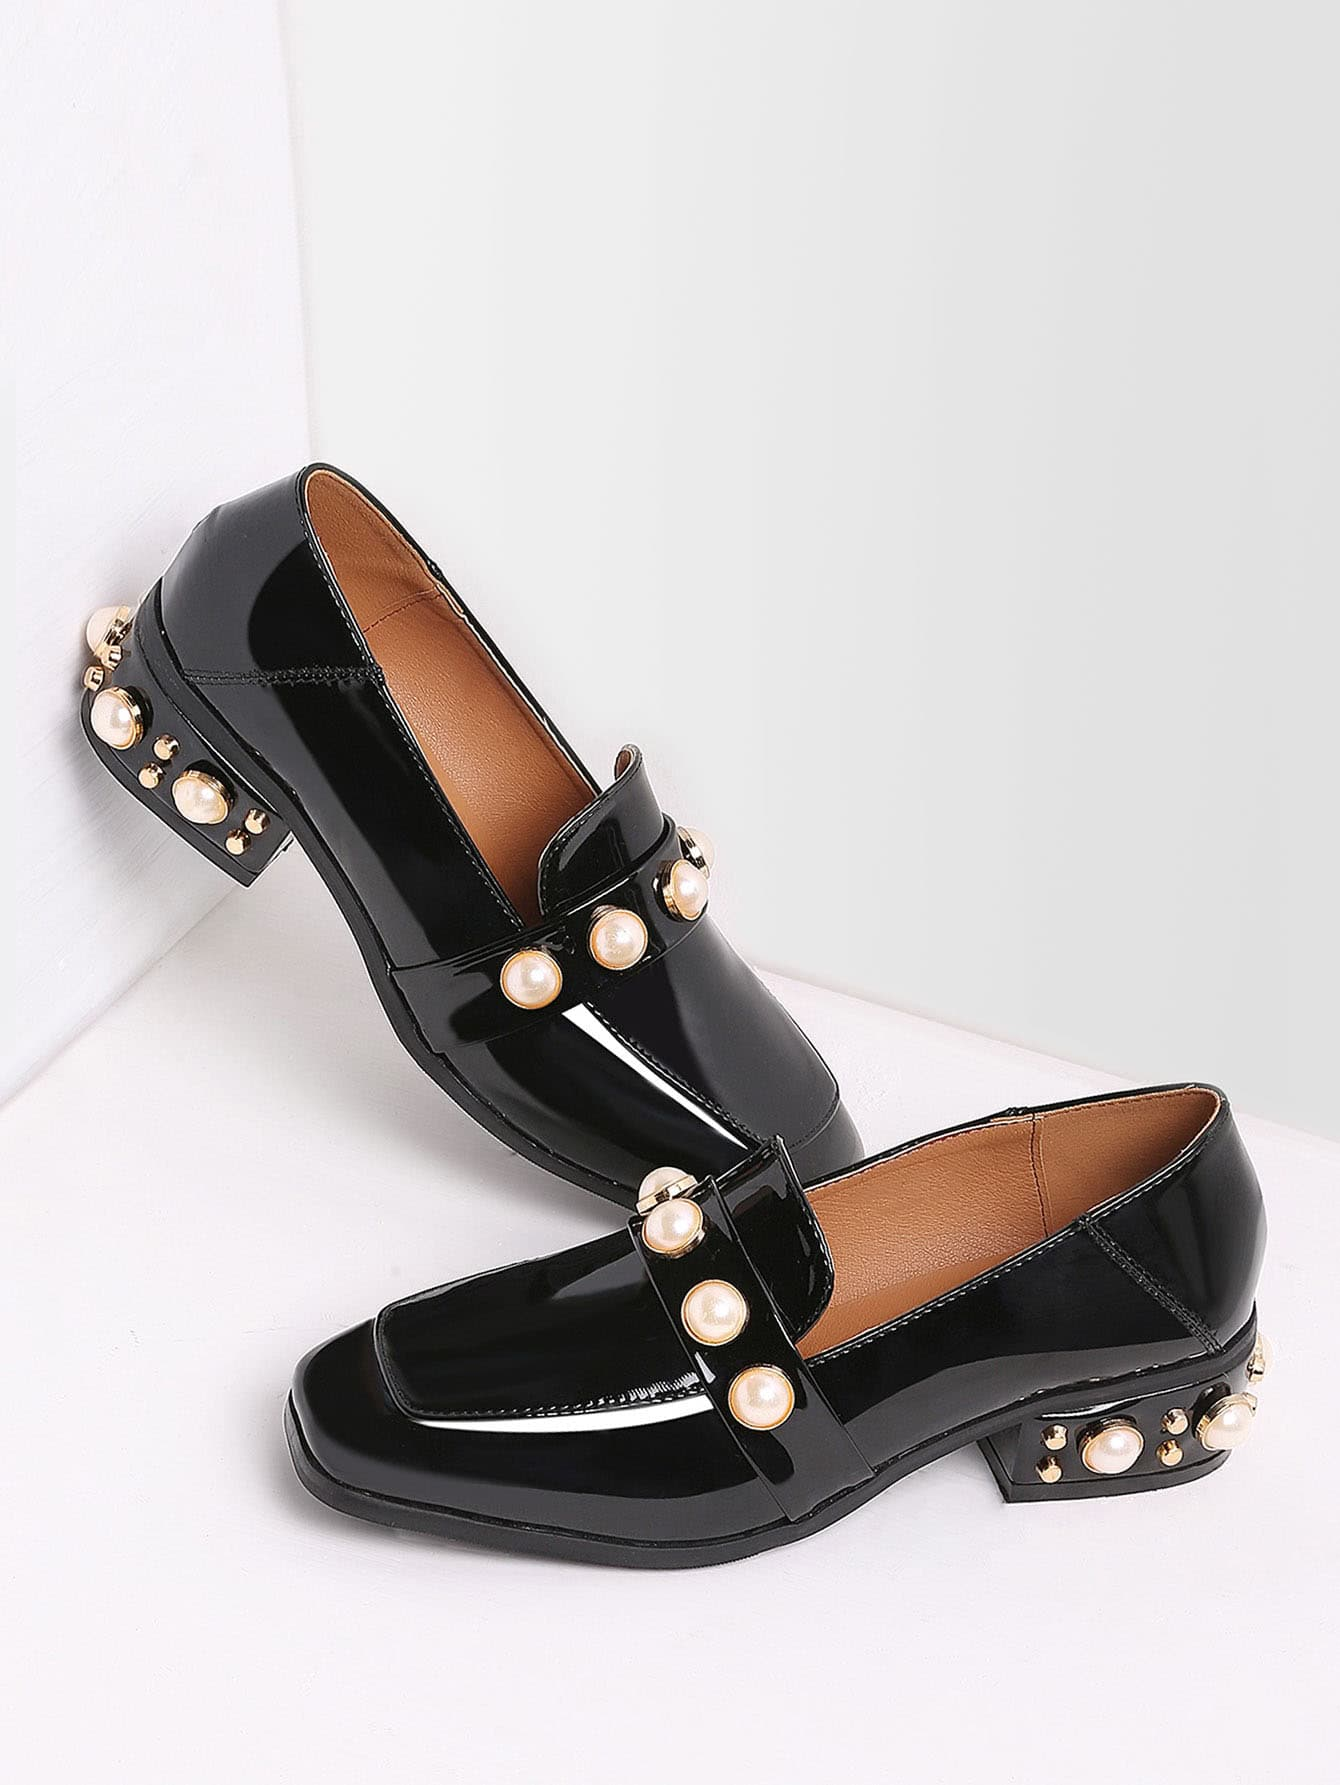 295b9af0562 Black Pearl Design Back Zipper Patent Leather Shoes - Latest Fashion ...